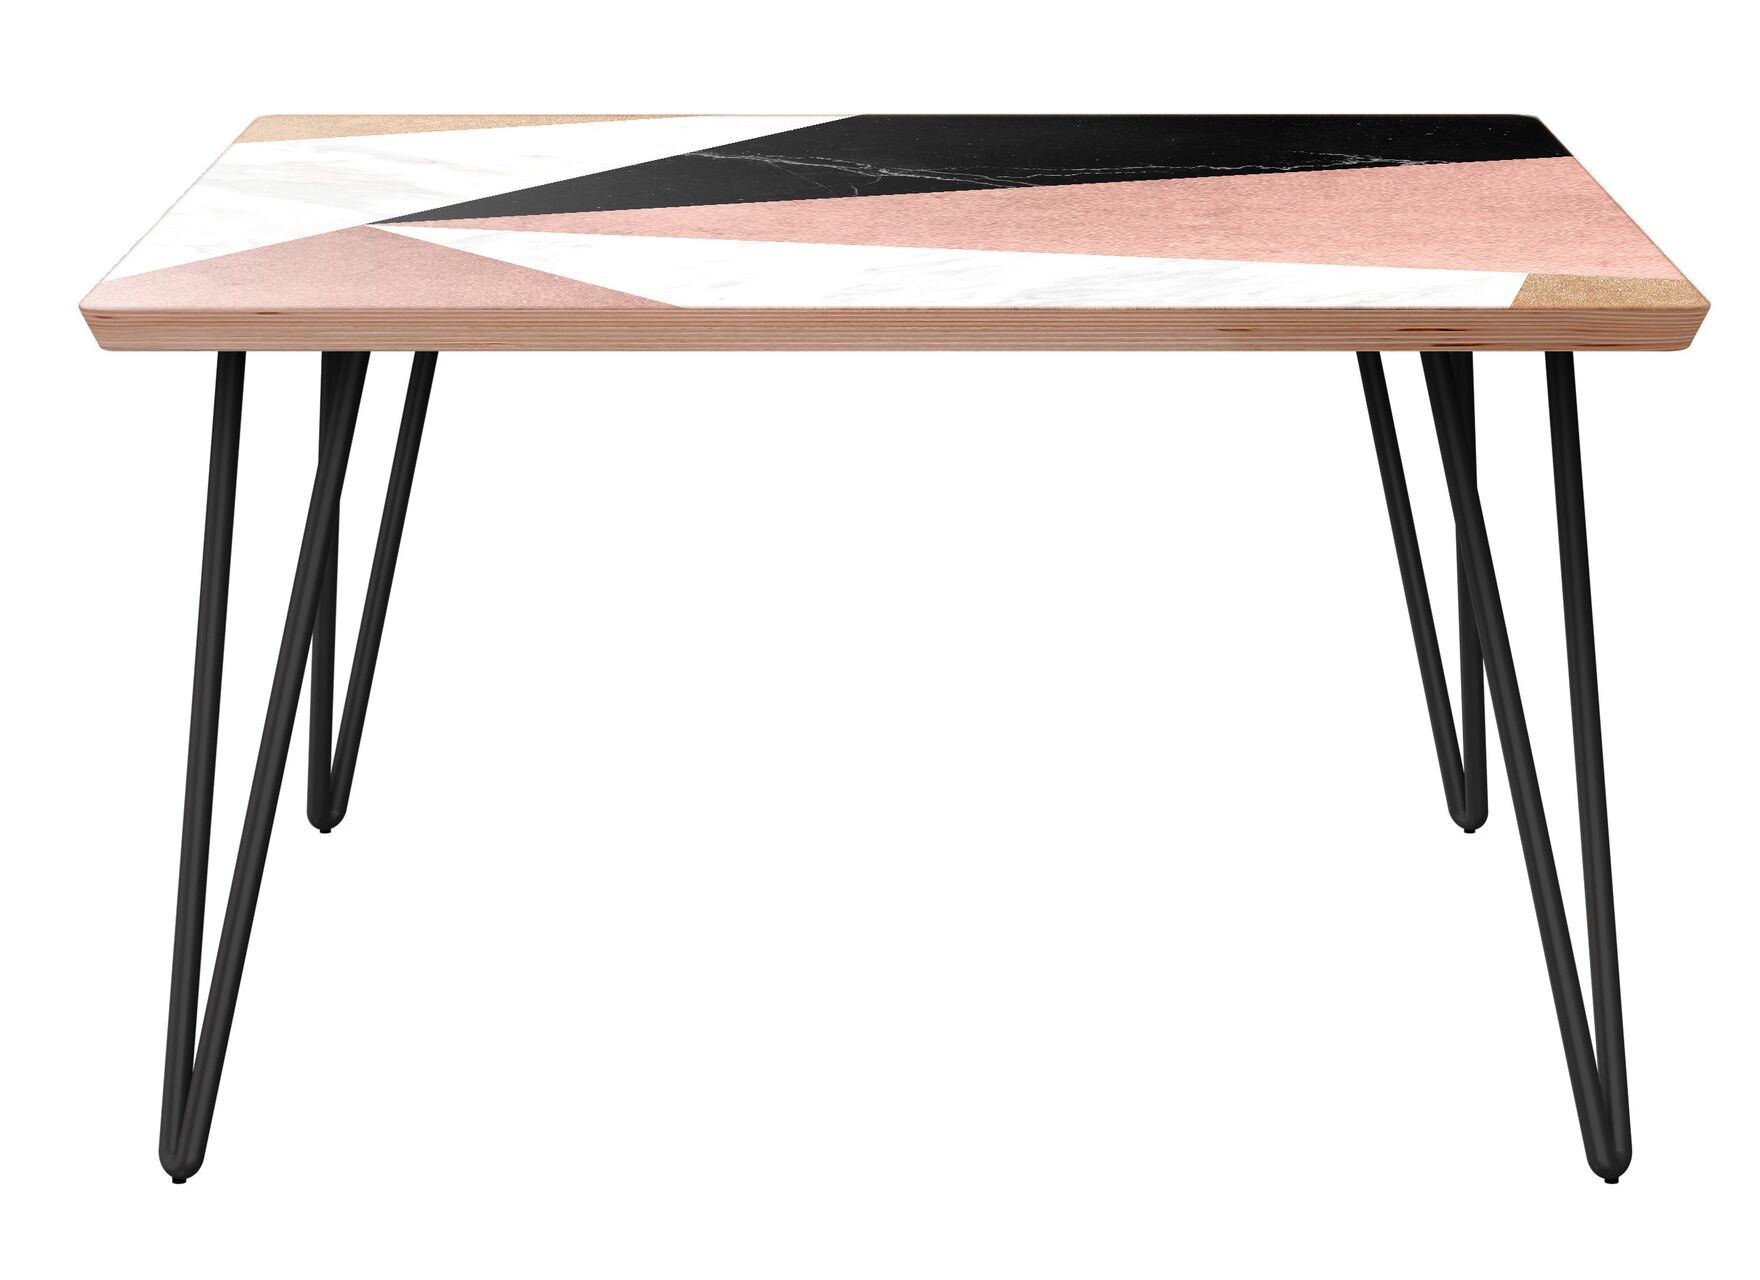 Royall Coffee Table Table Base Color: Black, Table Top Color: Walnut